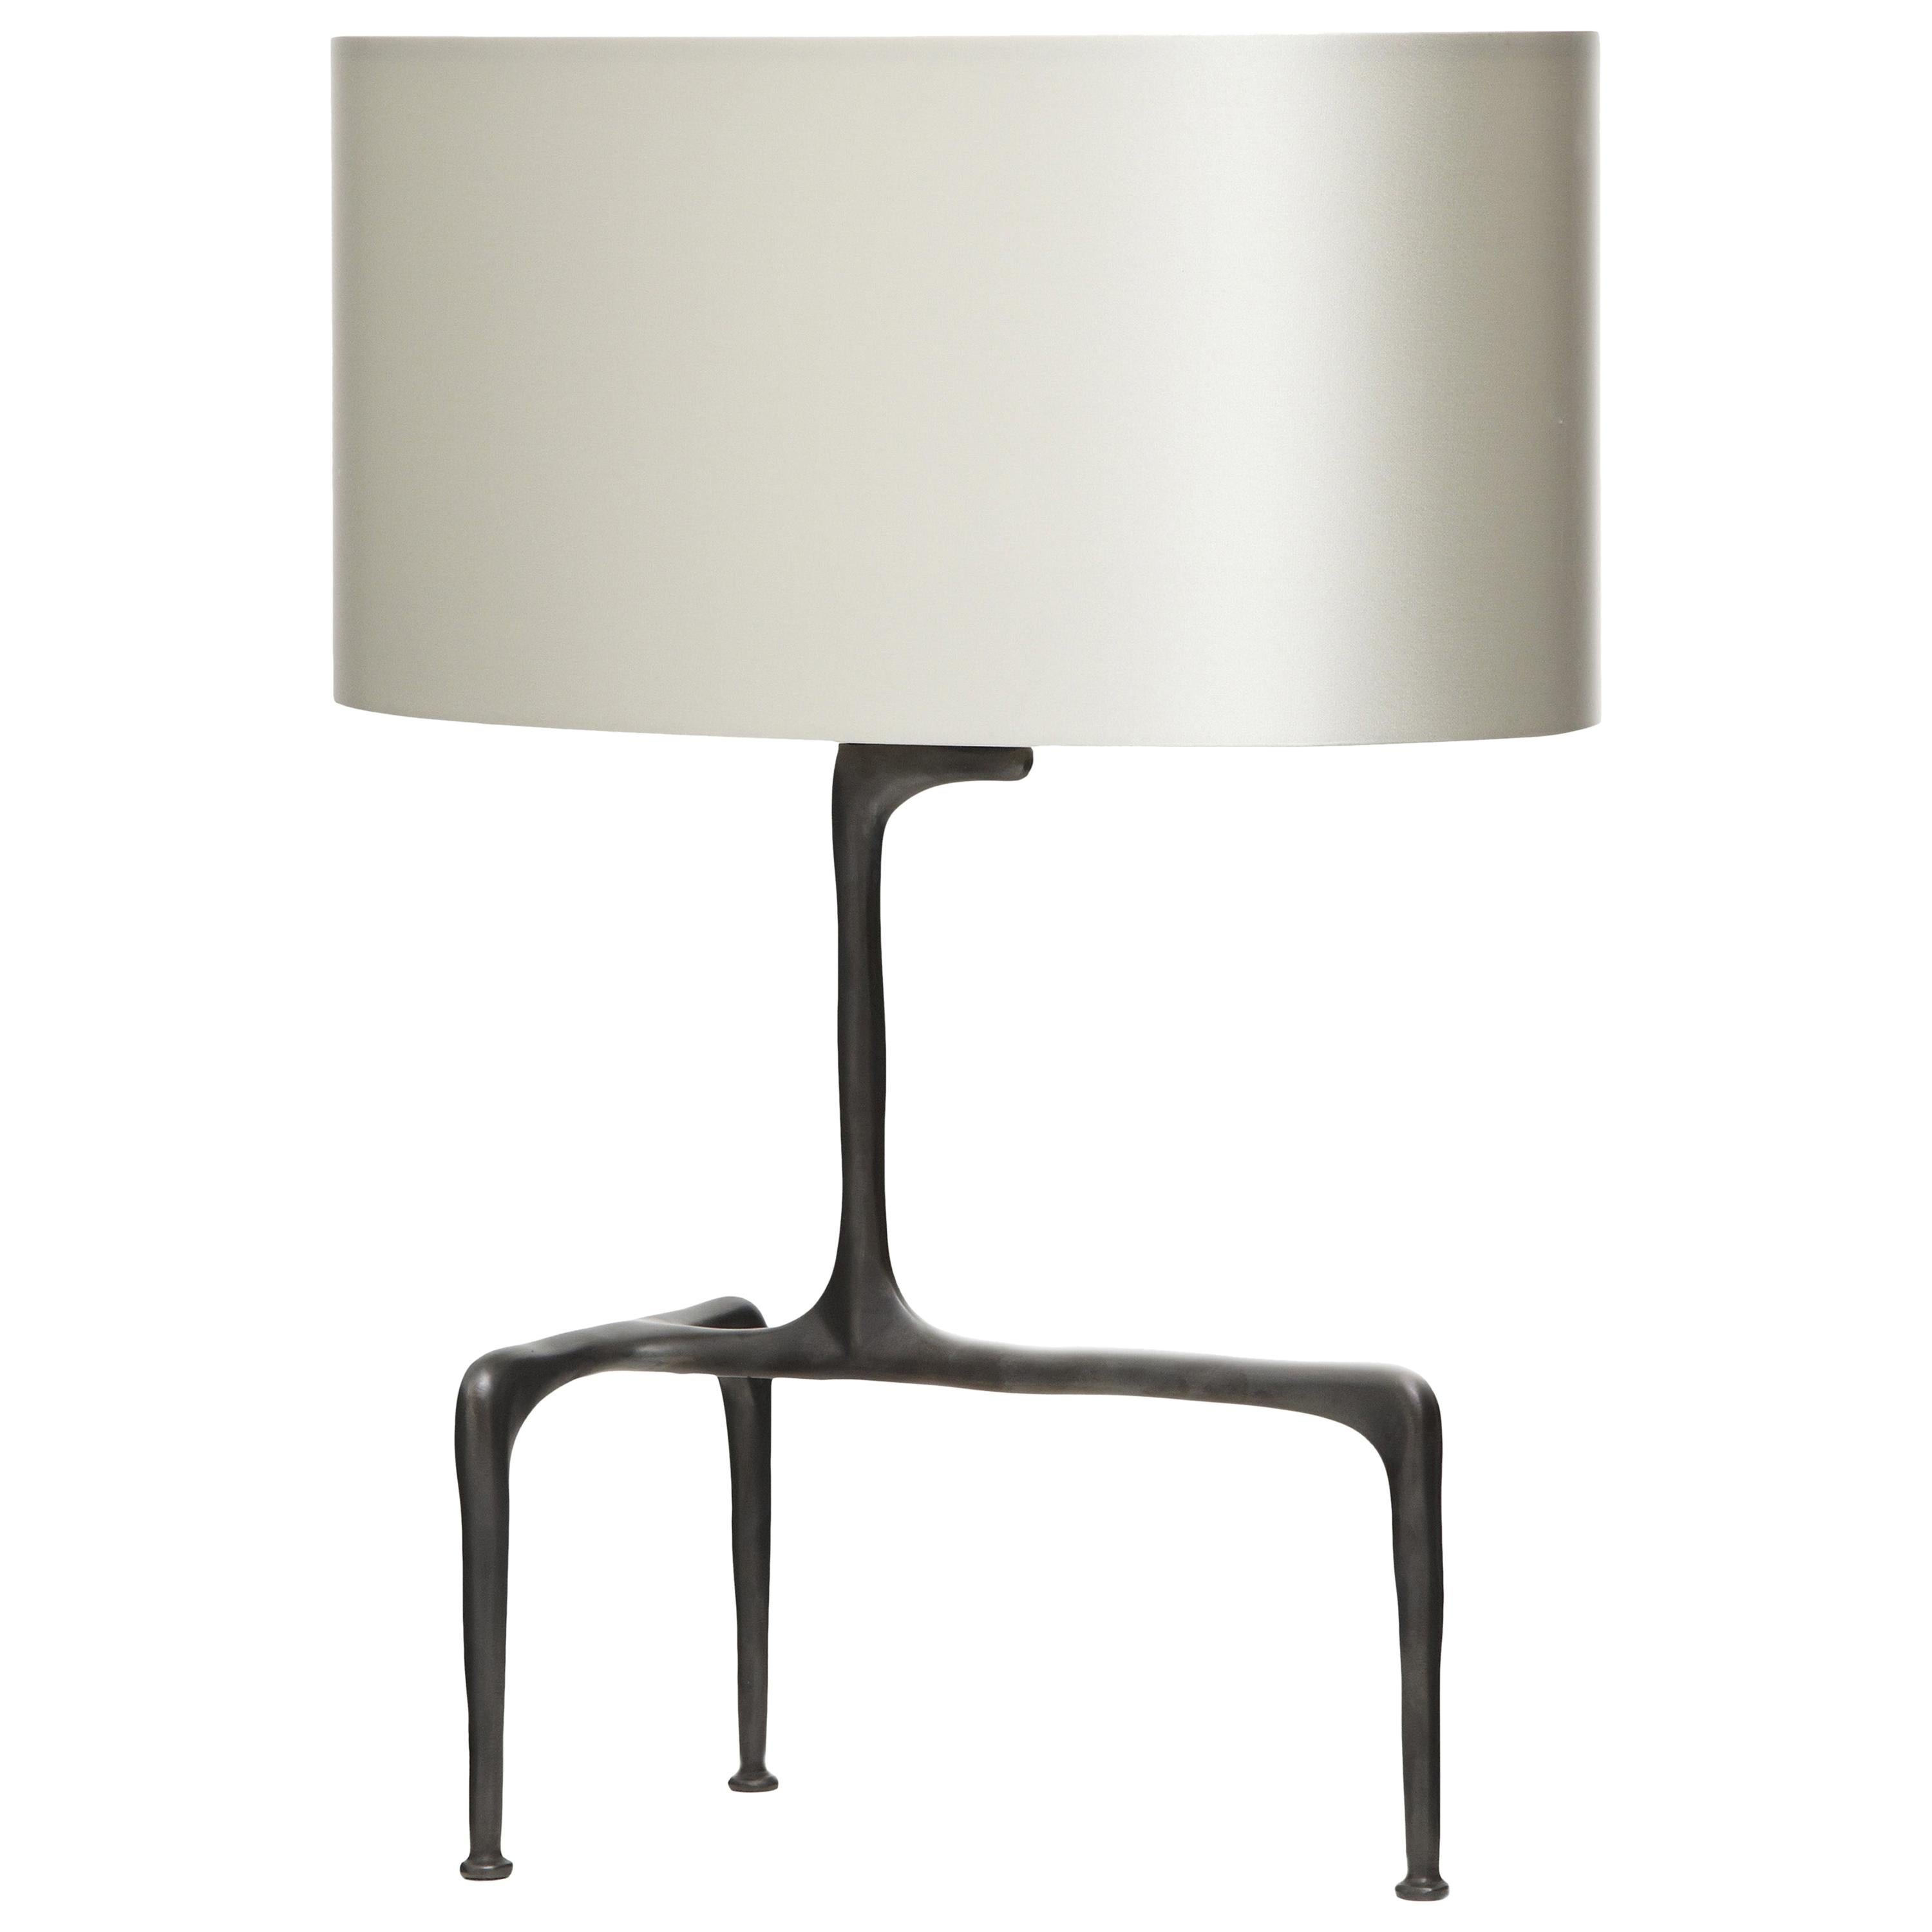 Braque Table Lamp by CTO Lighting